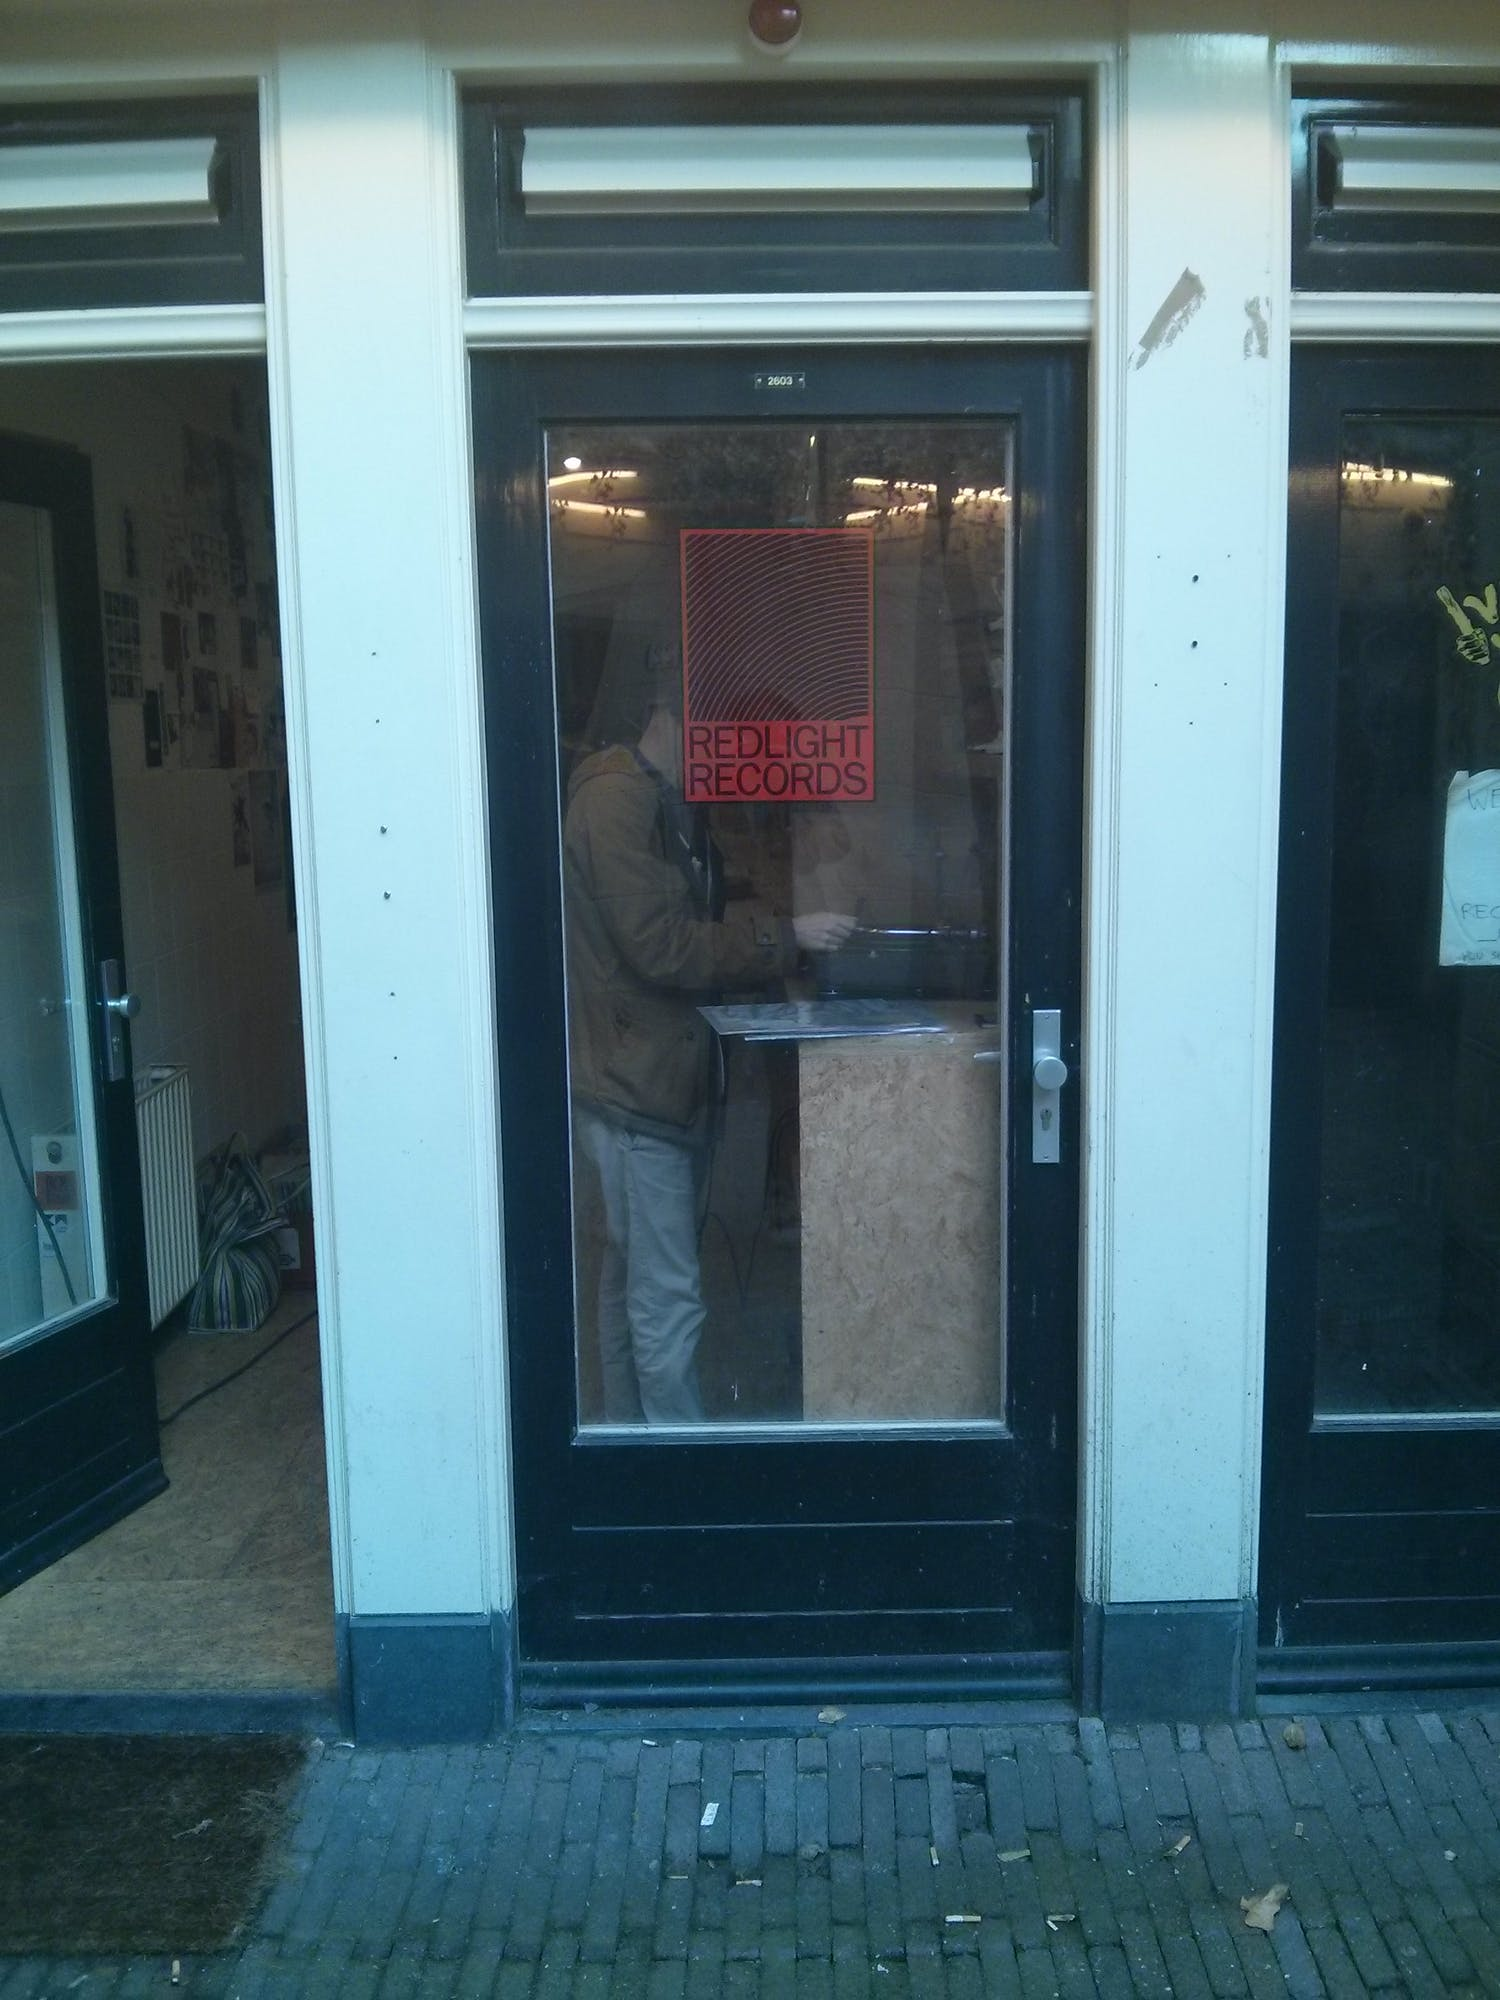 Red Light Records - Record Store Image